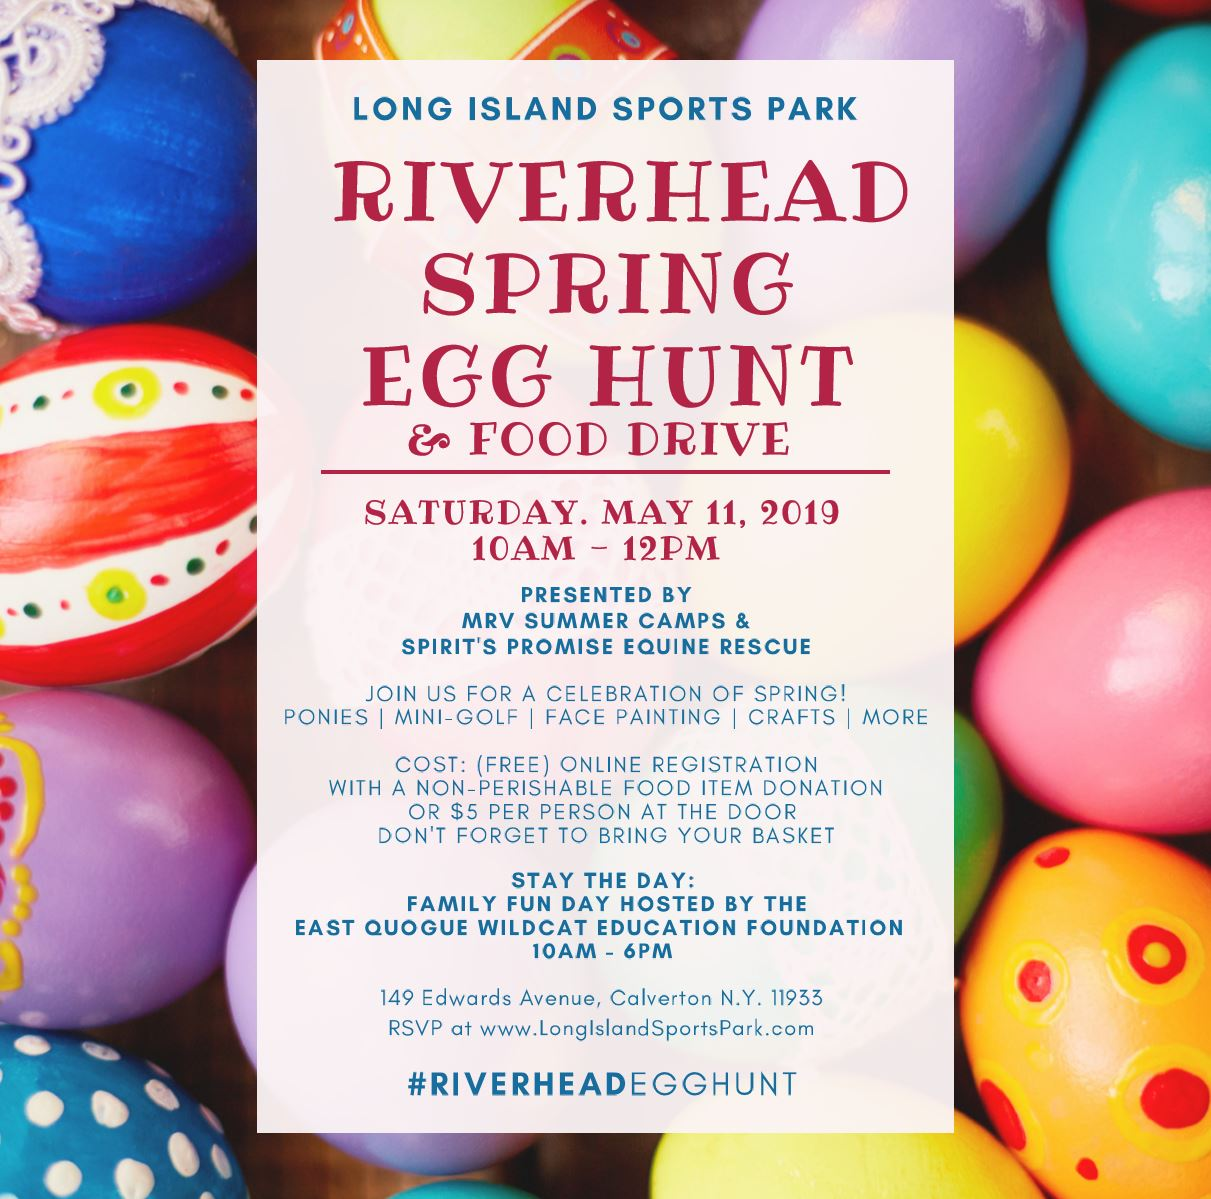 Riverhead Egg Hunt - May 11th.JPG